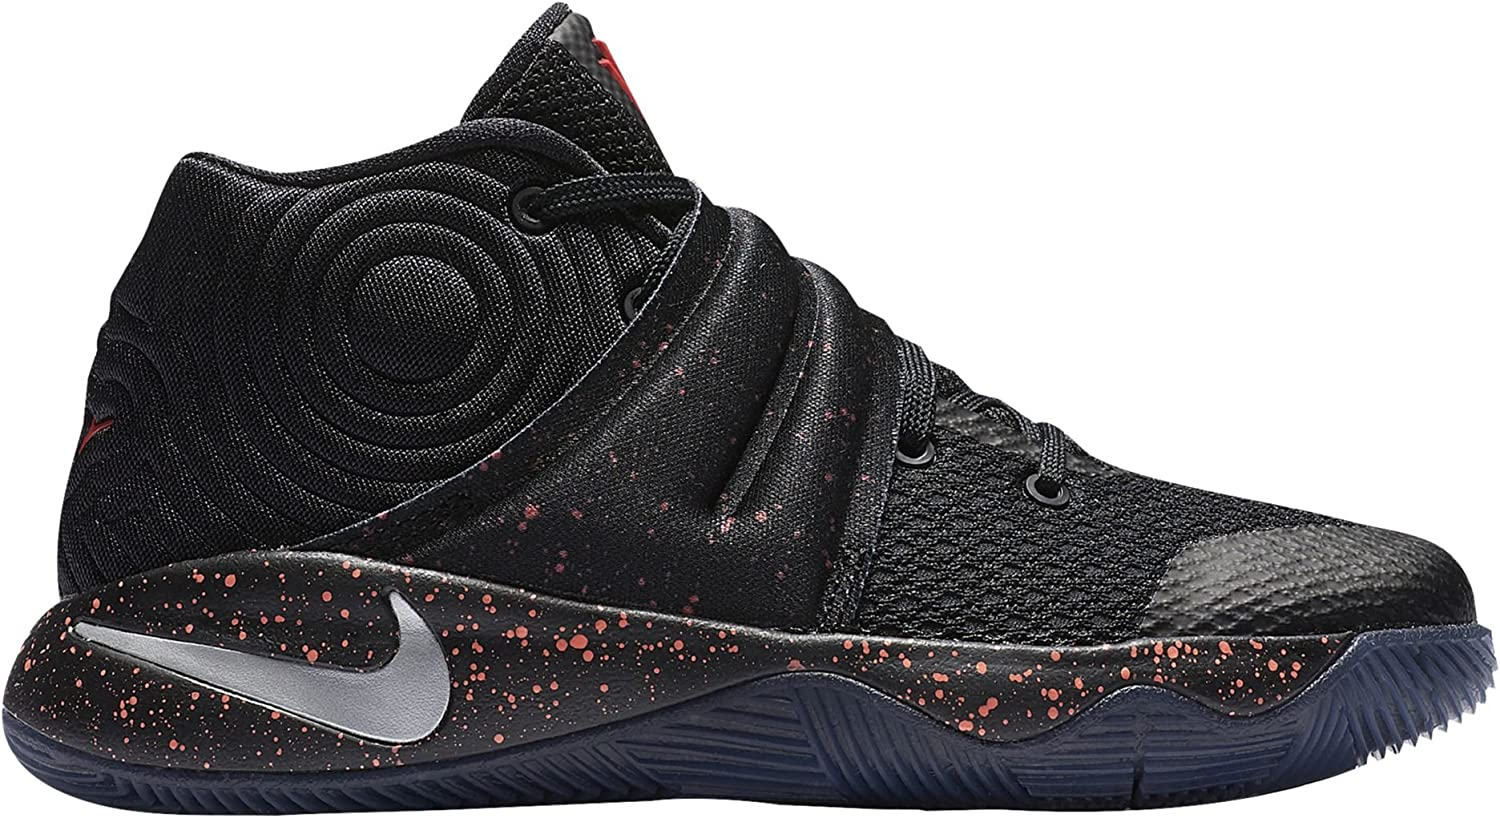 Speckles Edition Basketball Shoes 11C